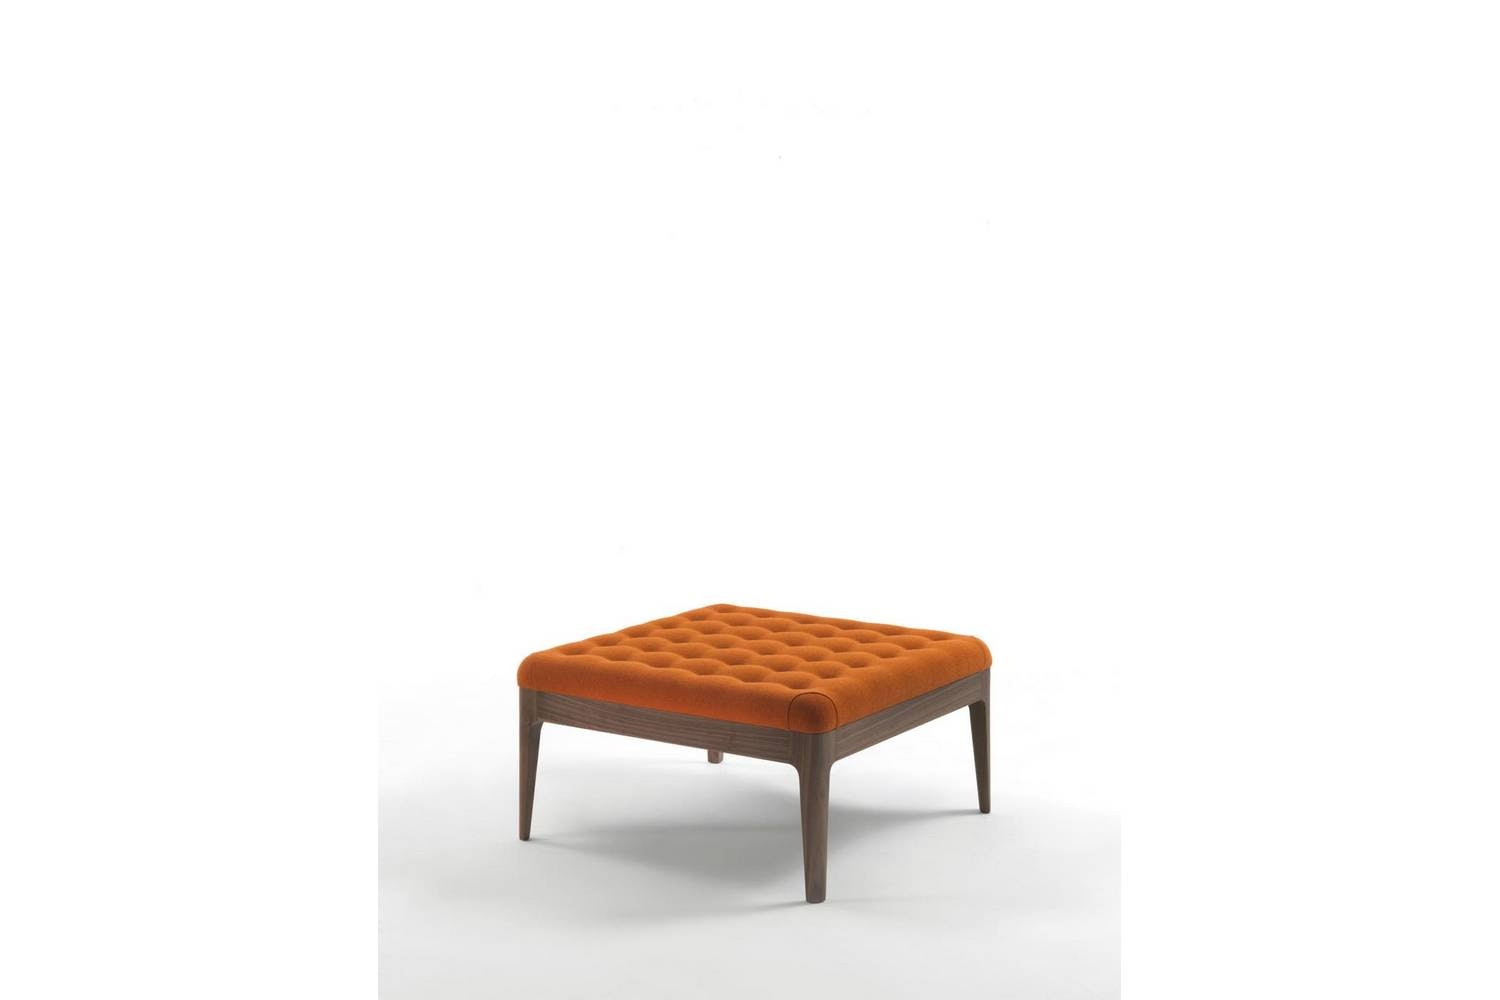 Webby Ottoman by C. Ballabio for Porada